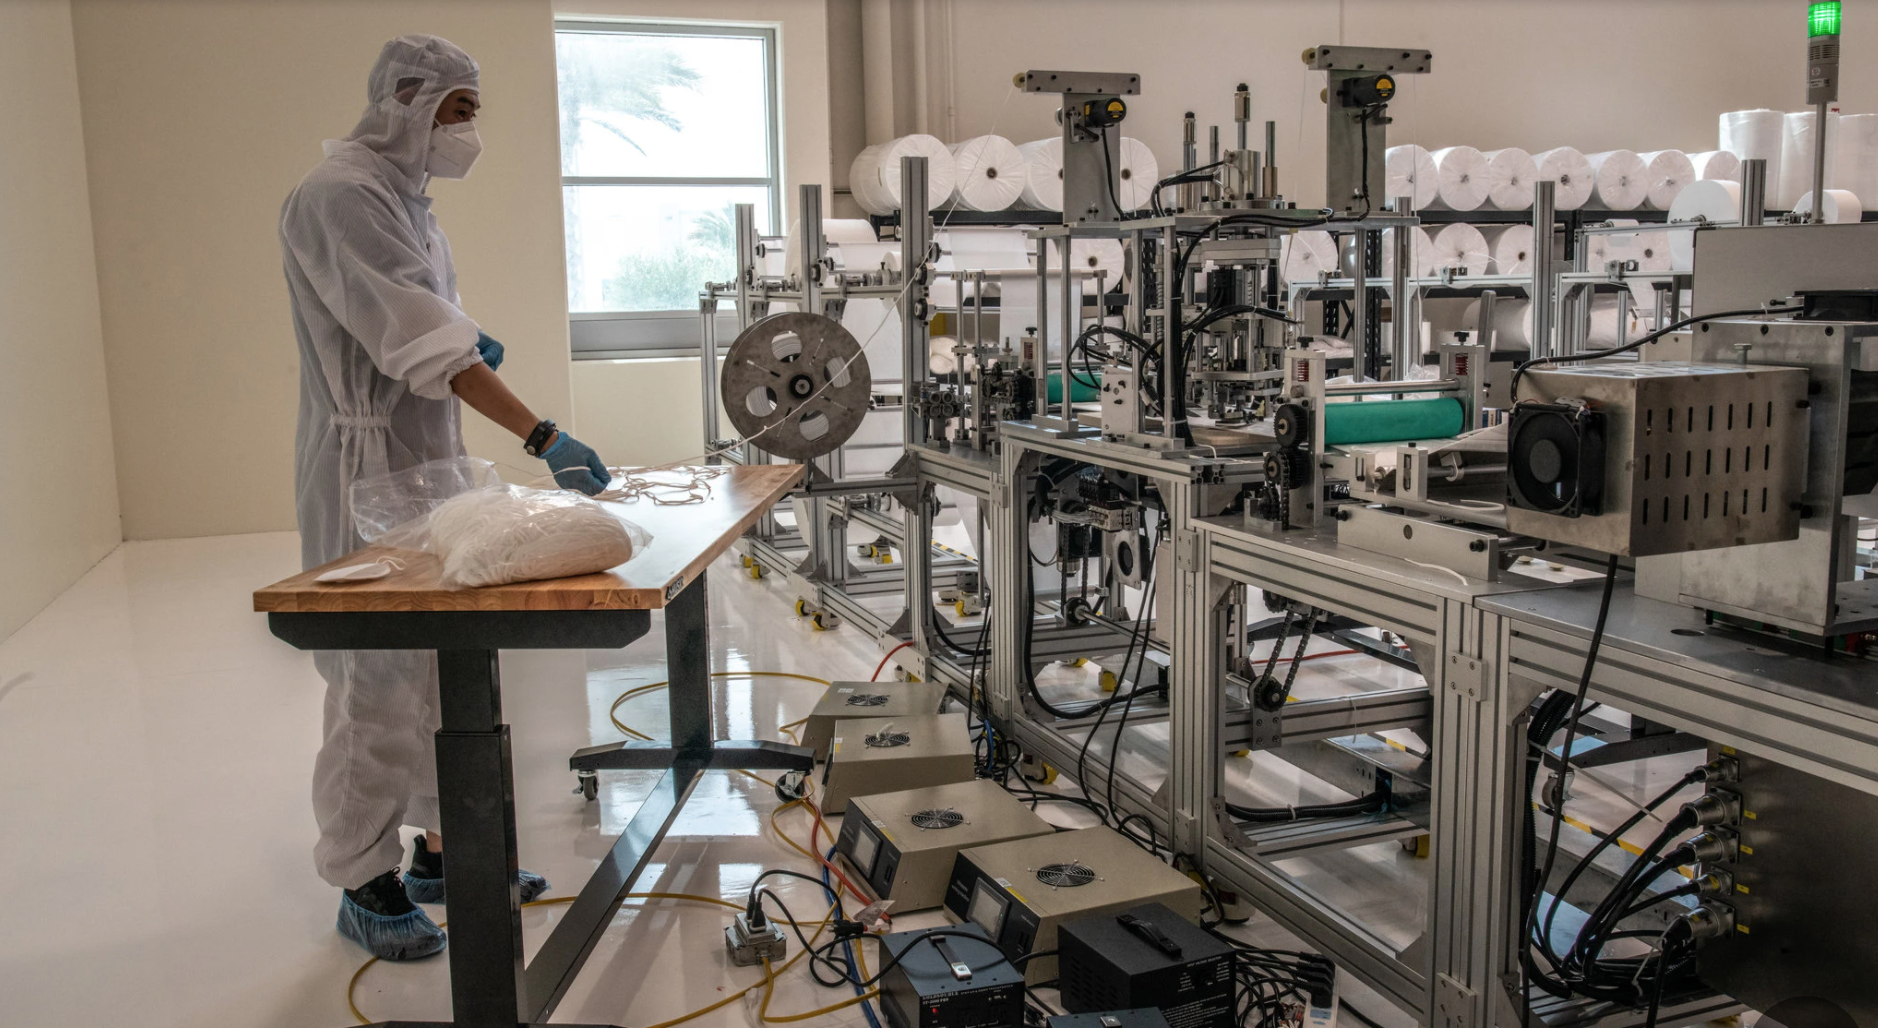 Supply snags as QYK Brands puts final touches on its $5 million medical mask production line as described in the South China Morning Post